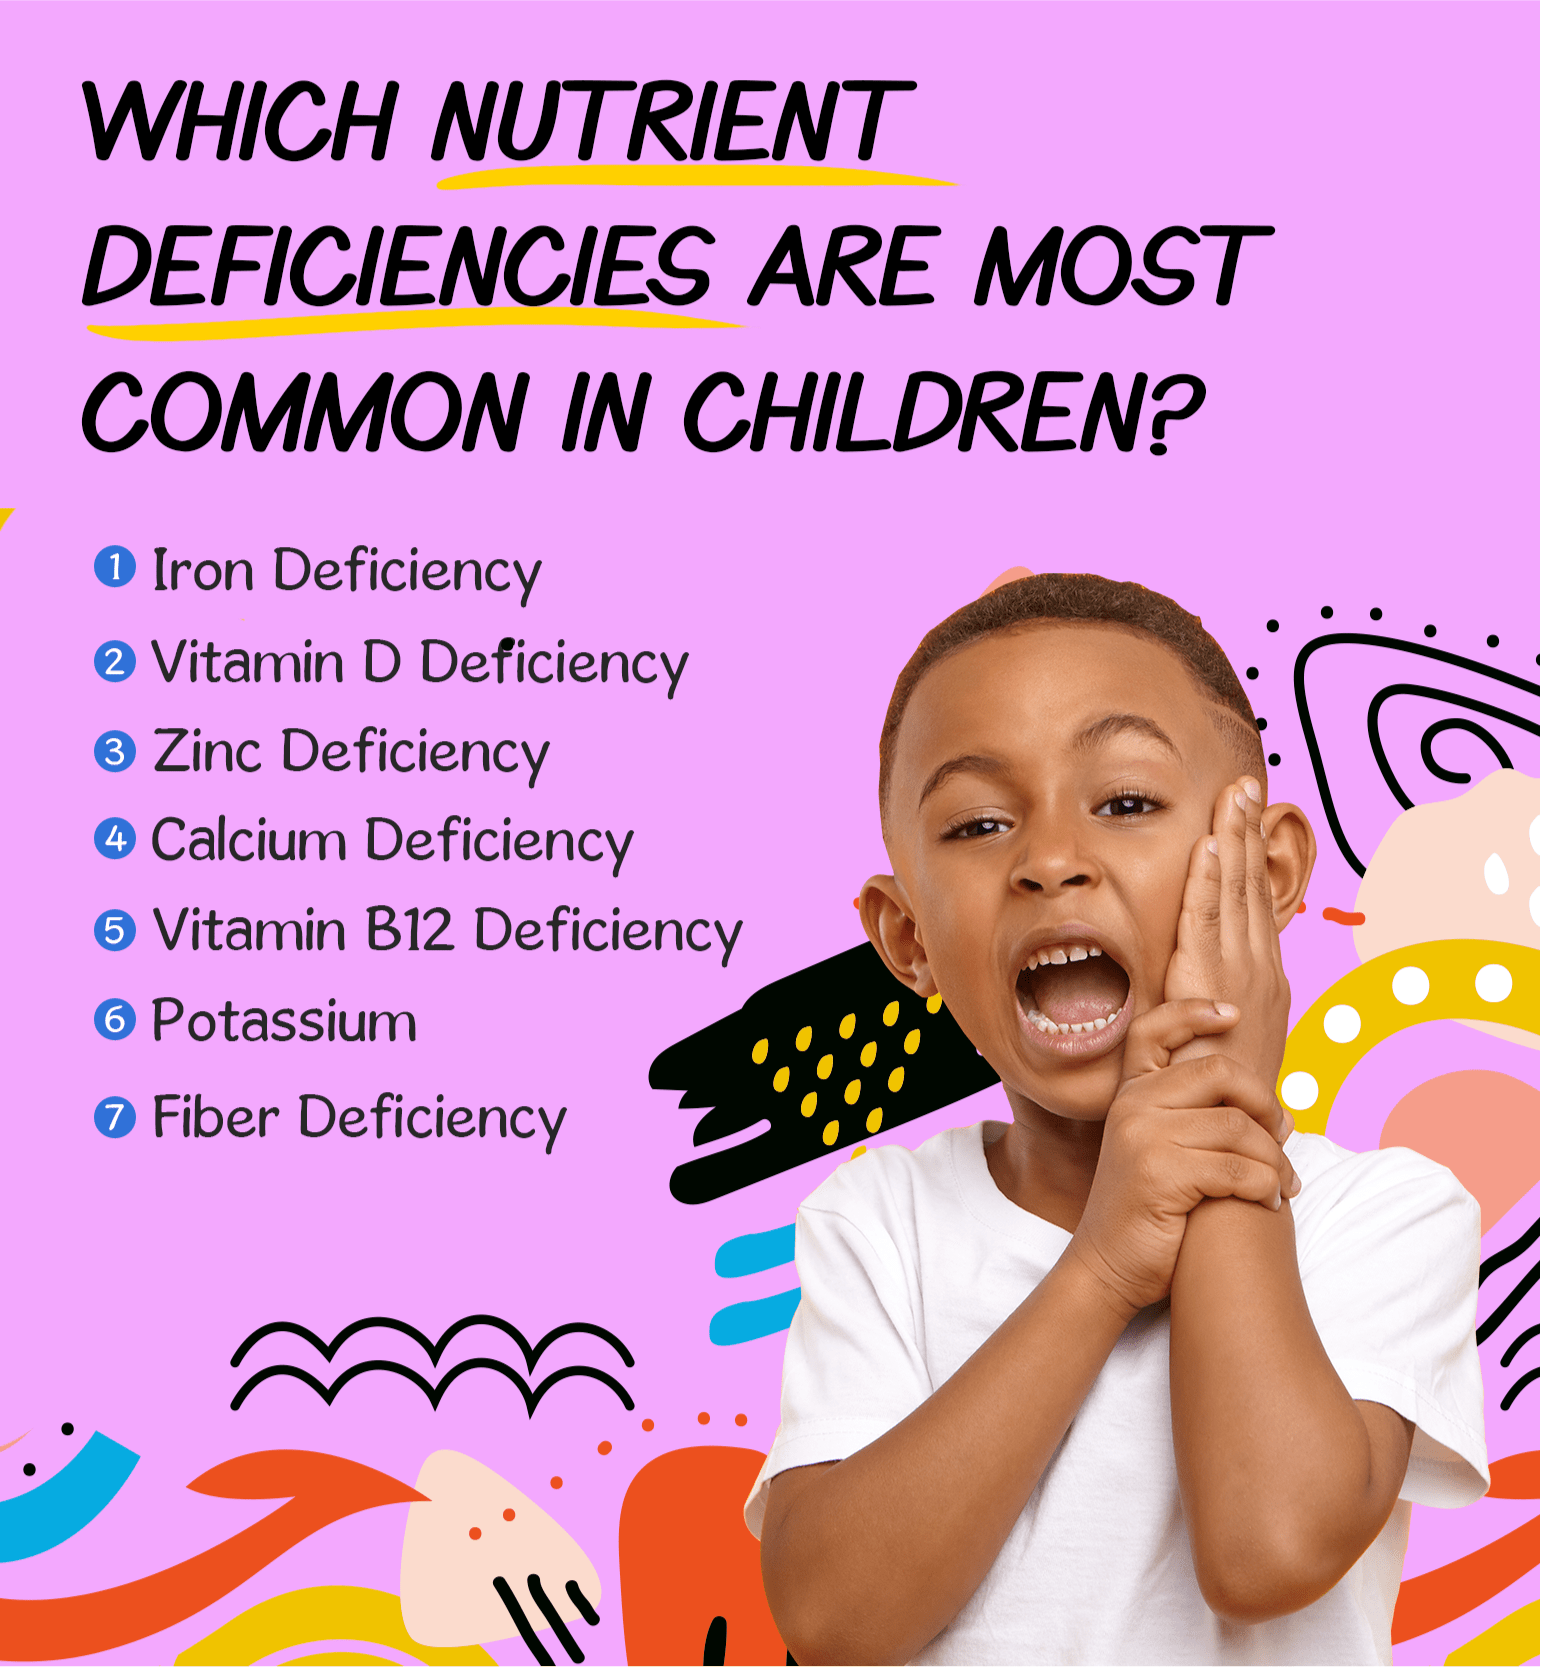 which nutrient deficiencies are most common in children